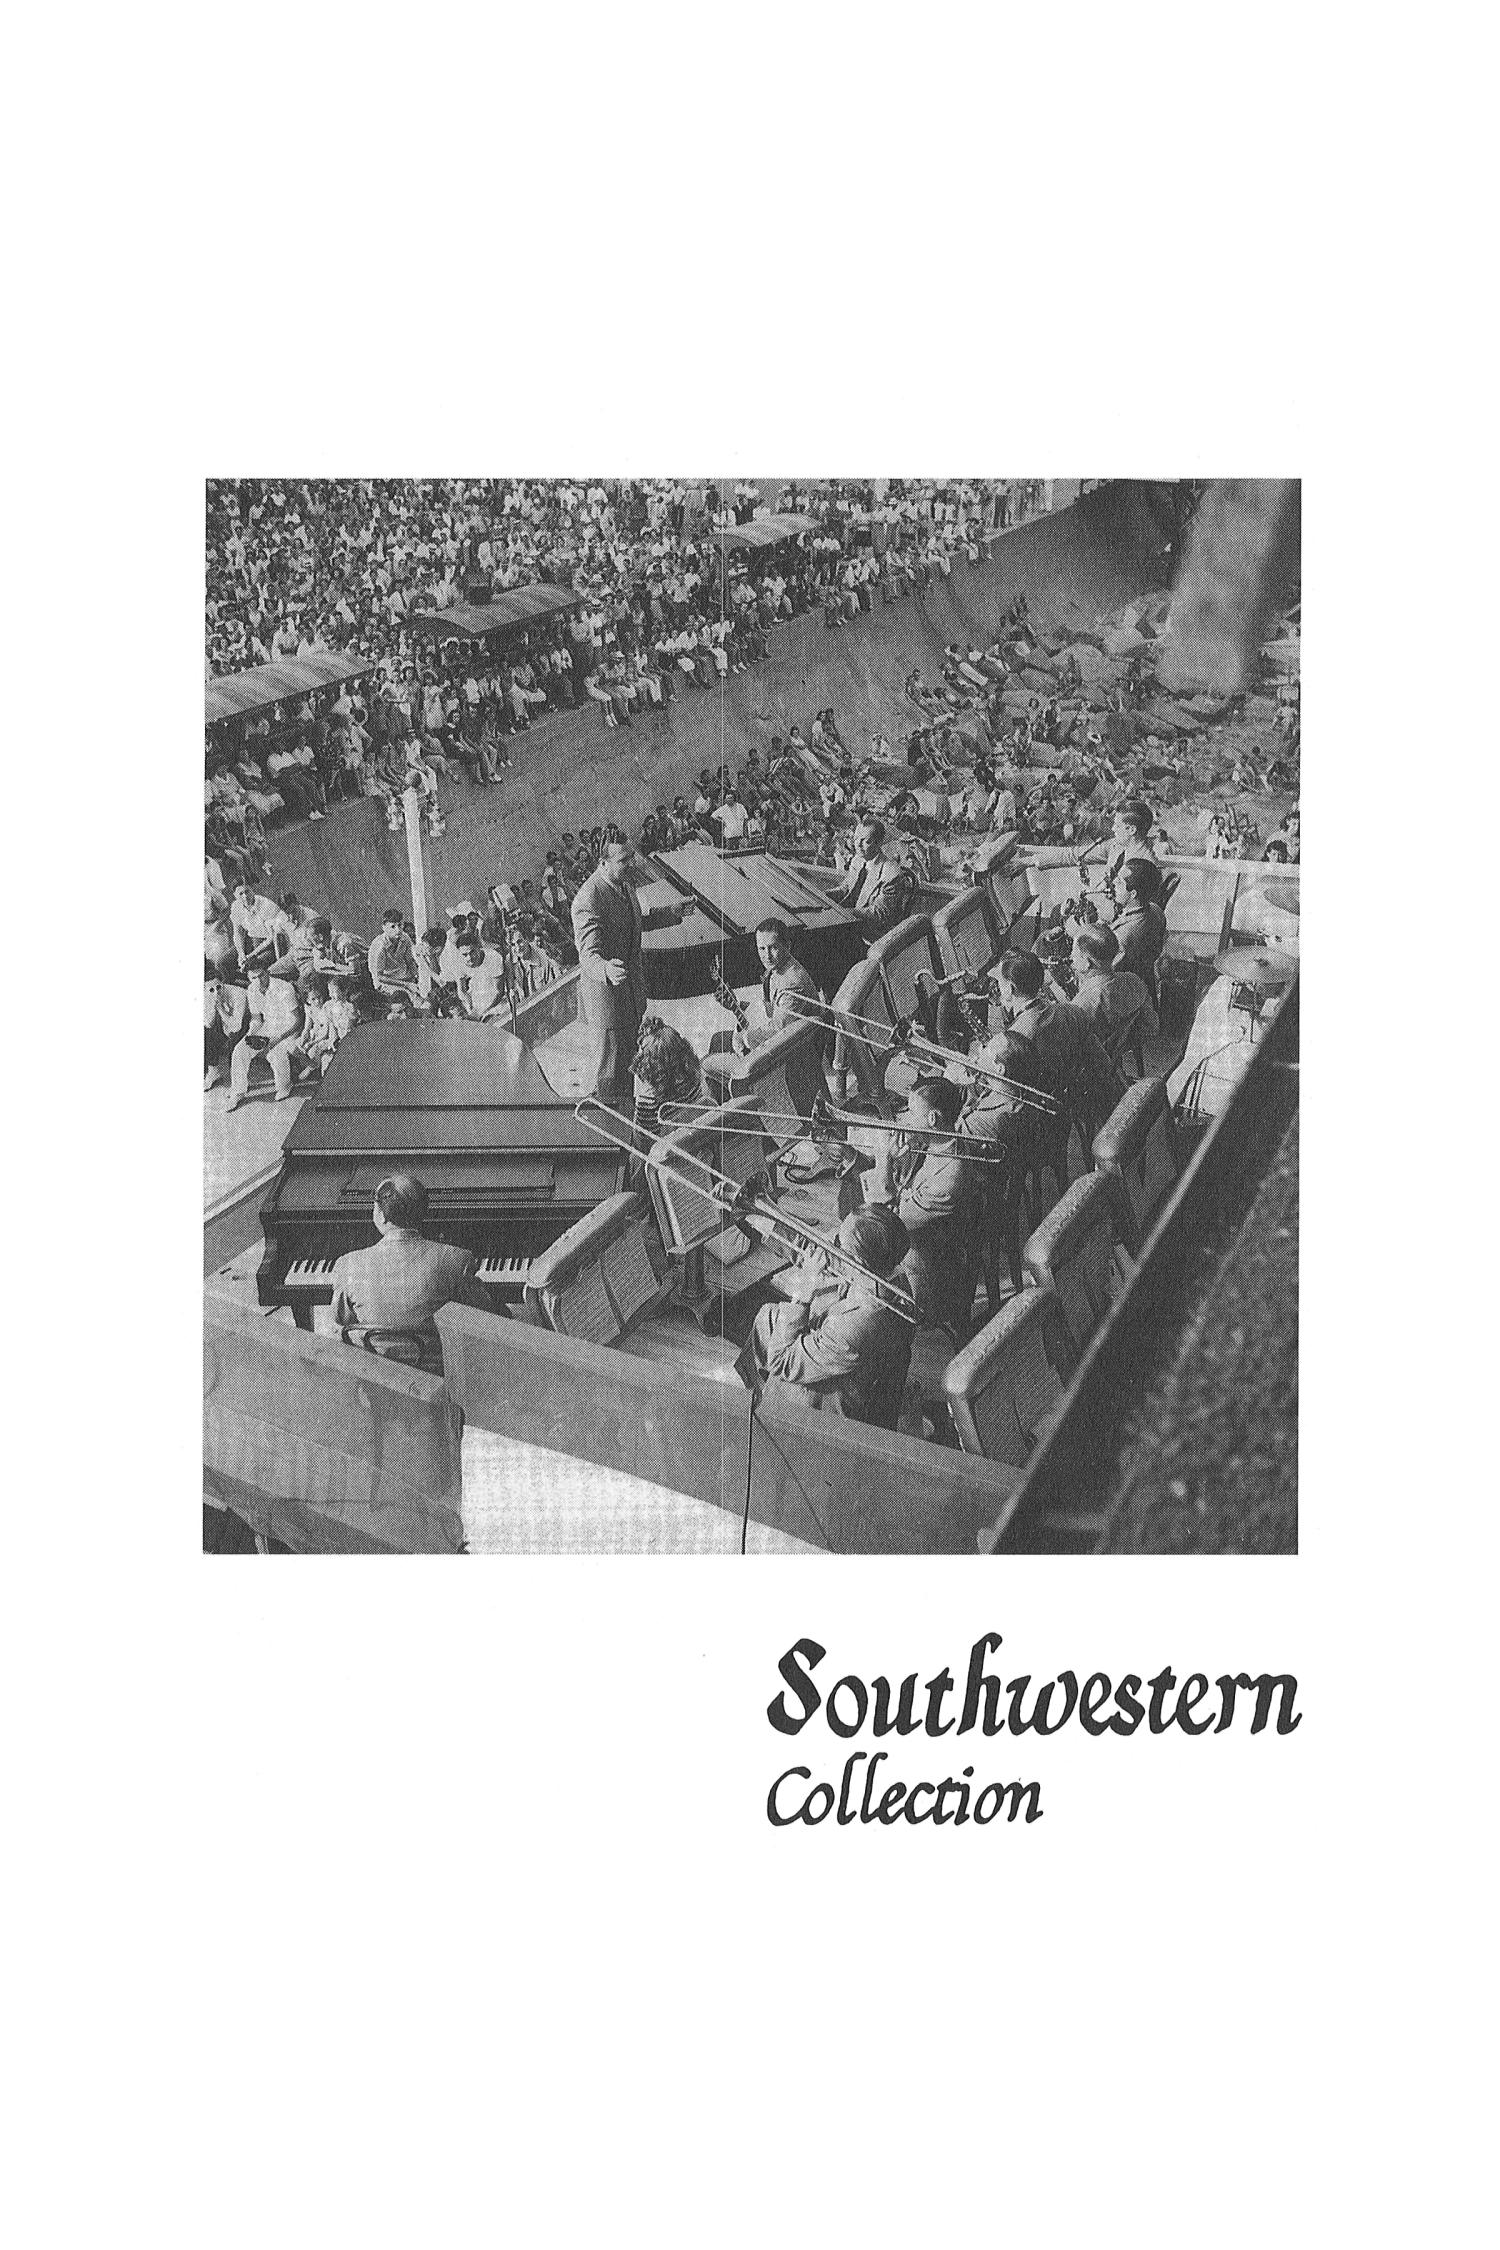 The Southwestern Historical Quarterly, Volume 100, July 1996 - April, 1997                                                                                                      381